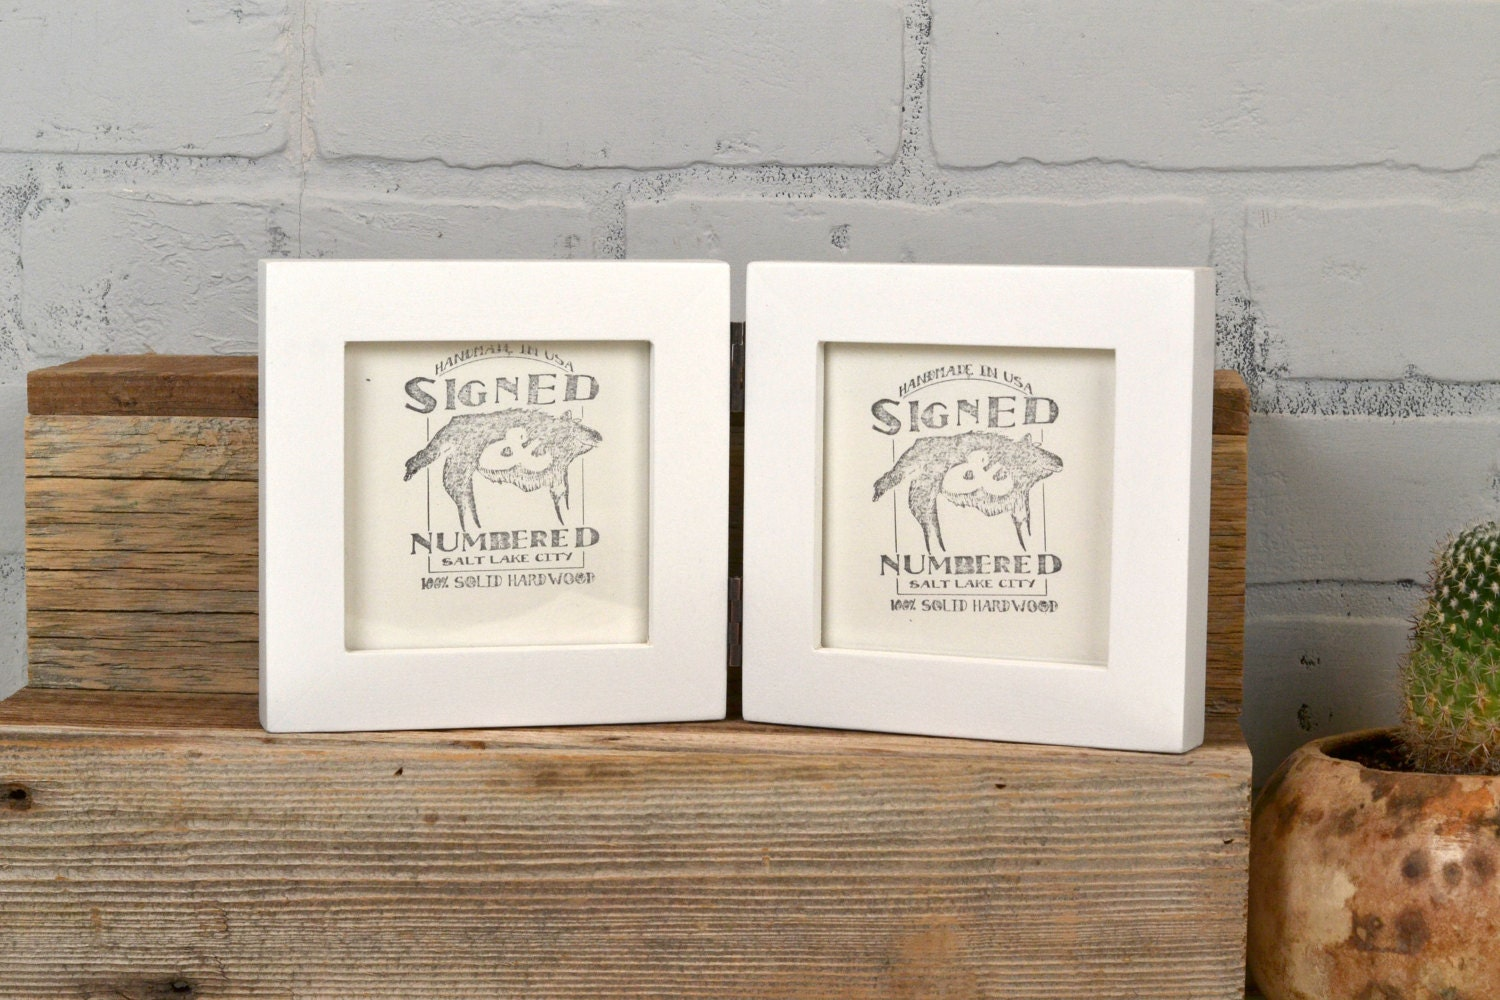 Two 4x4 Square Picture Frames in 1x1 Flat Style Hinged Together in ...